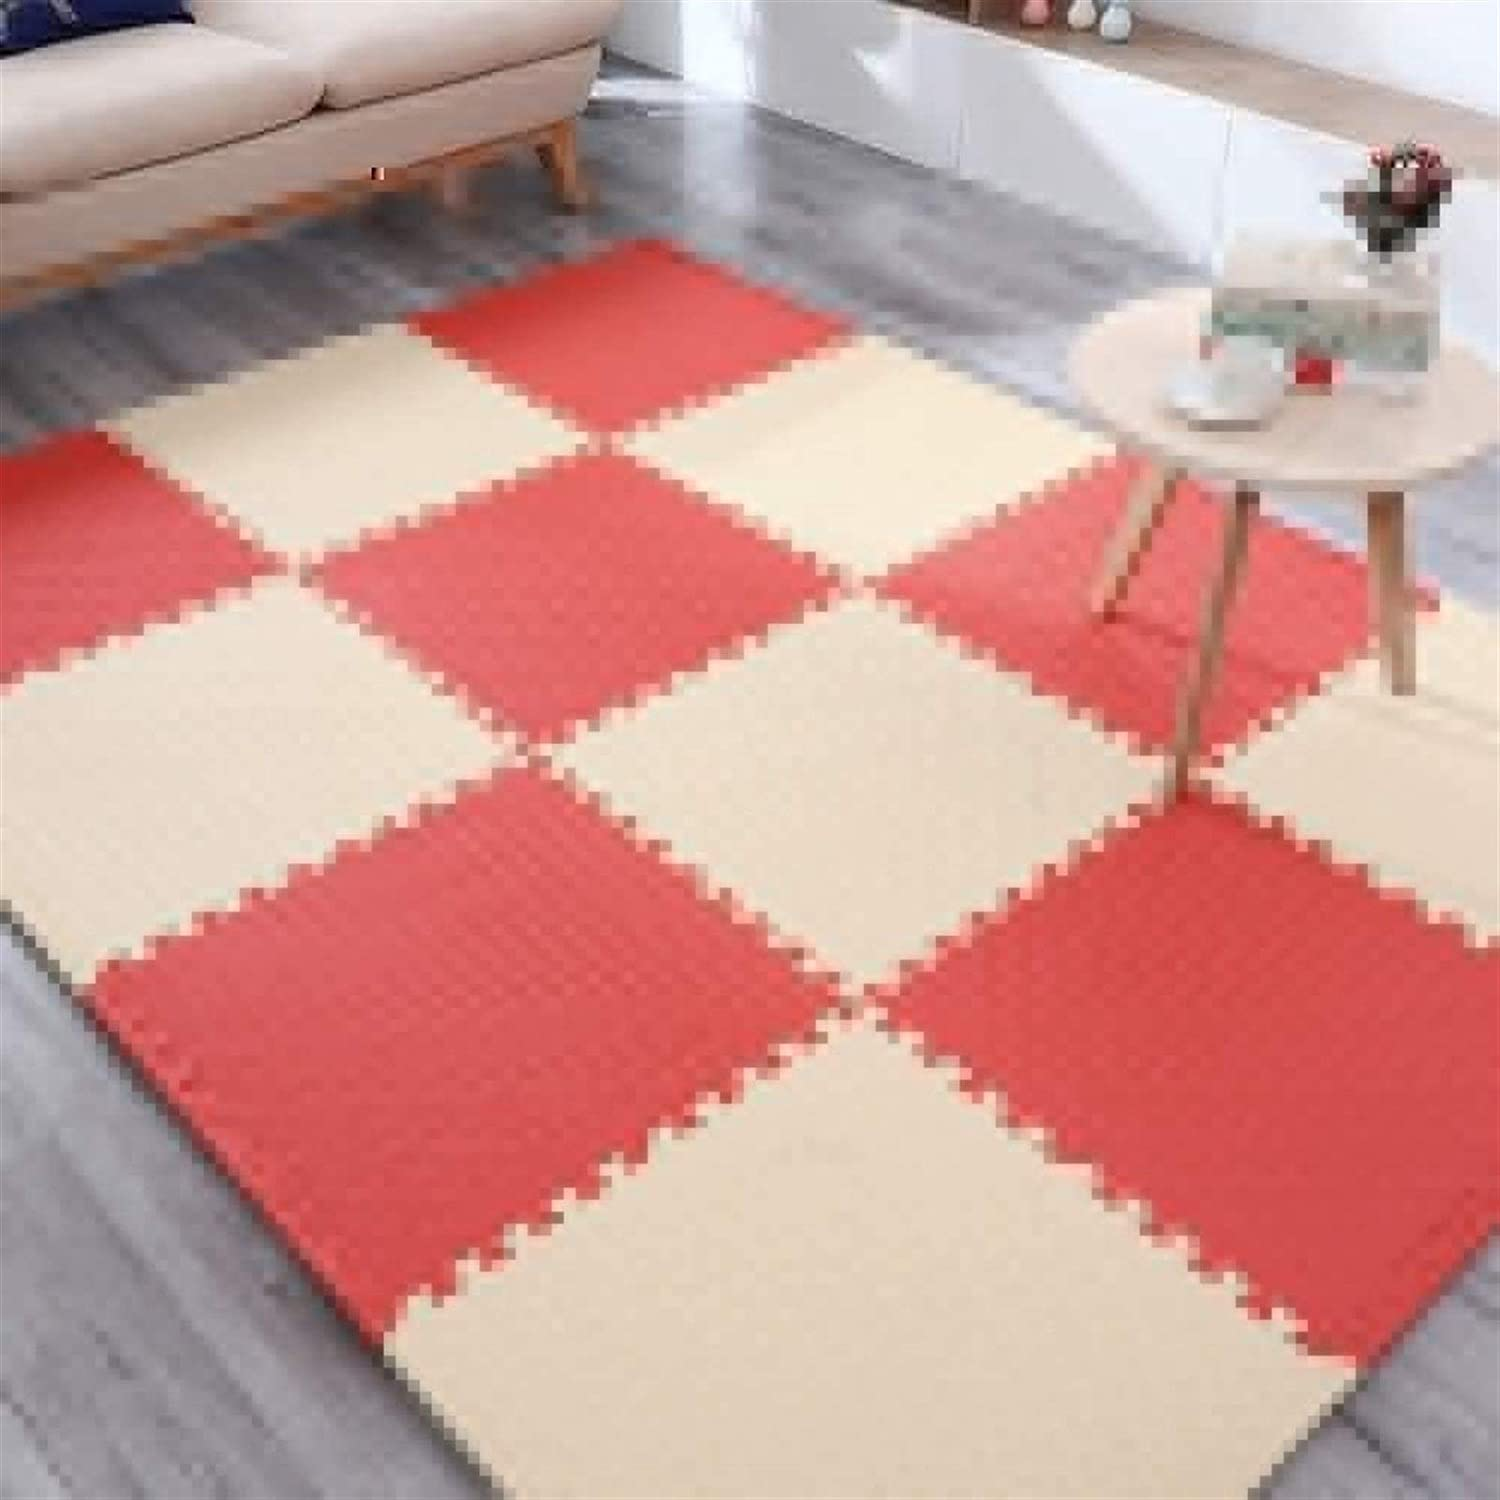 Puzzle Play Mats 2021 autumn and winter new Versatile Foam And Manufacturer regenerated product Tough Offering Durable